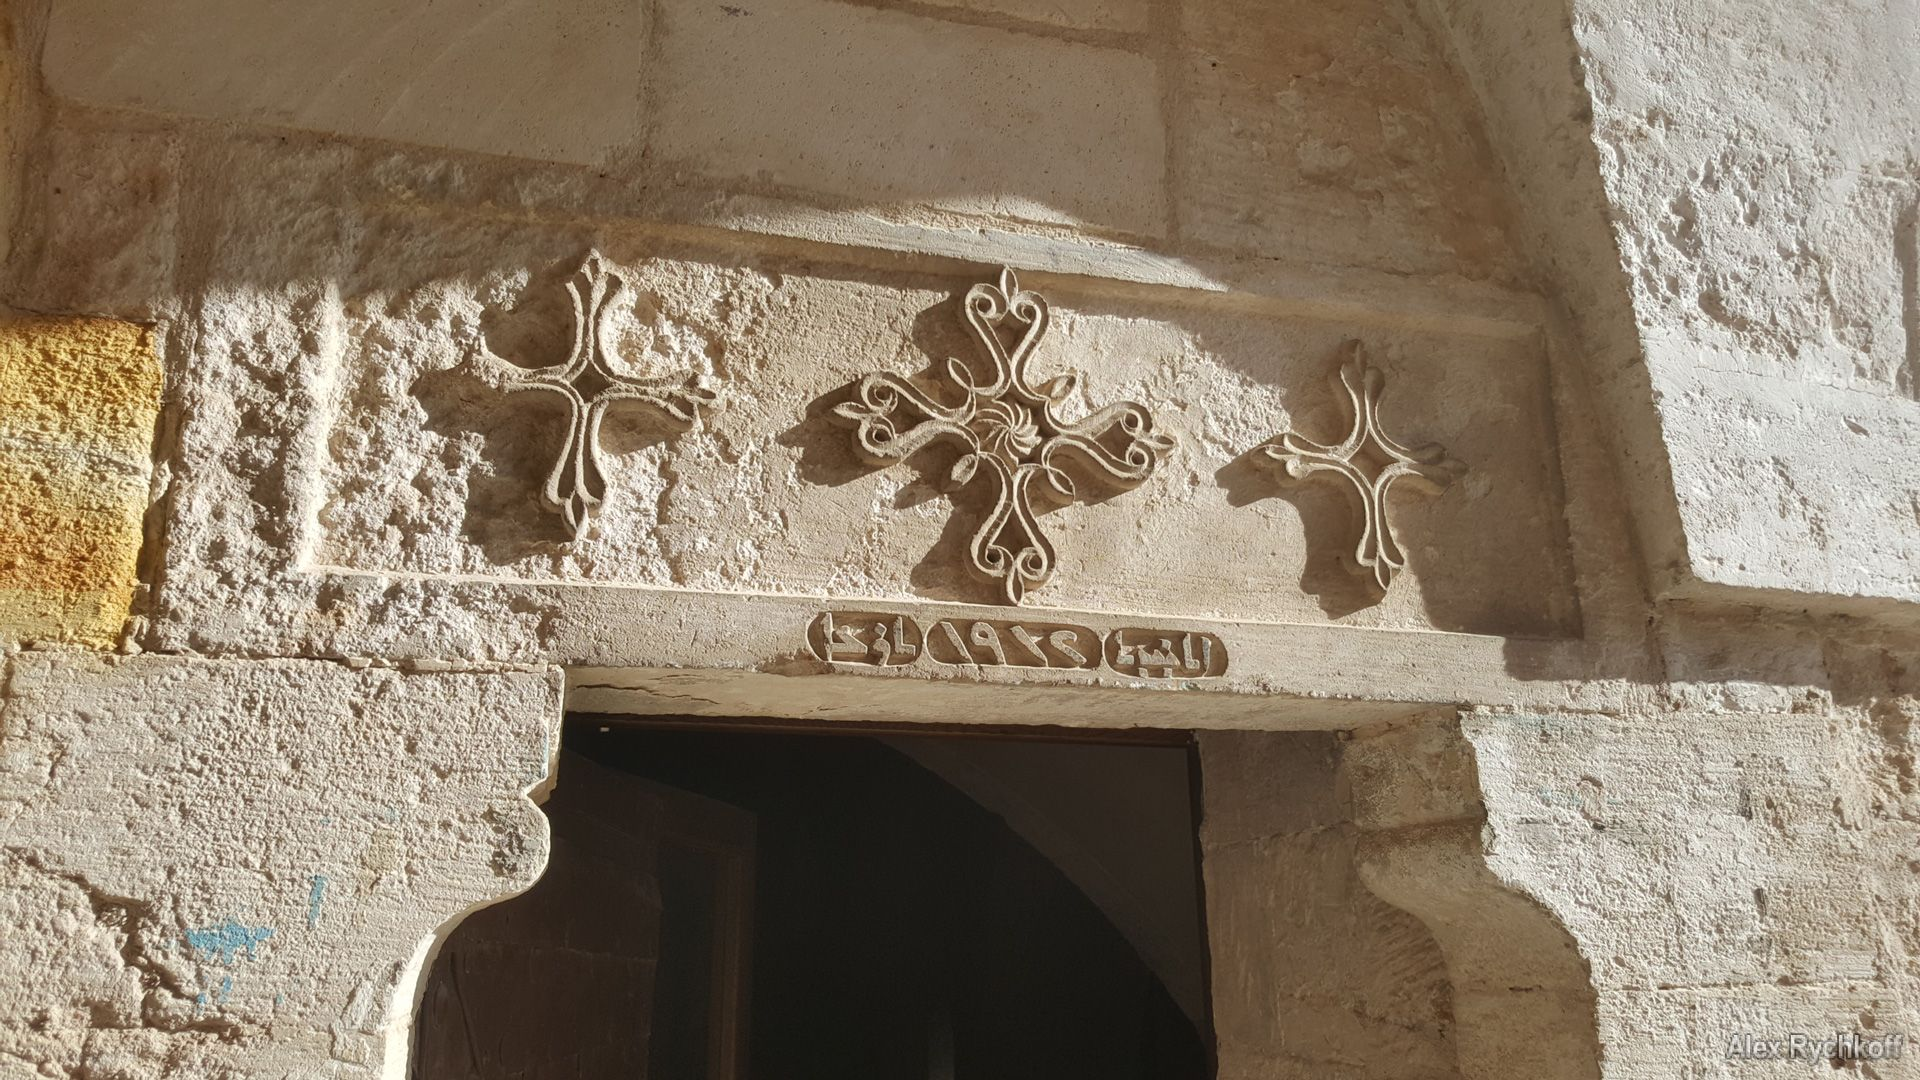 Crosses carved in stone above the entrance to the church